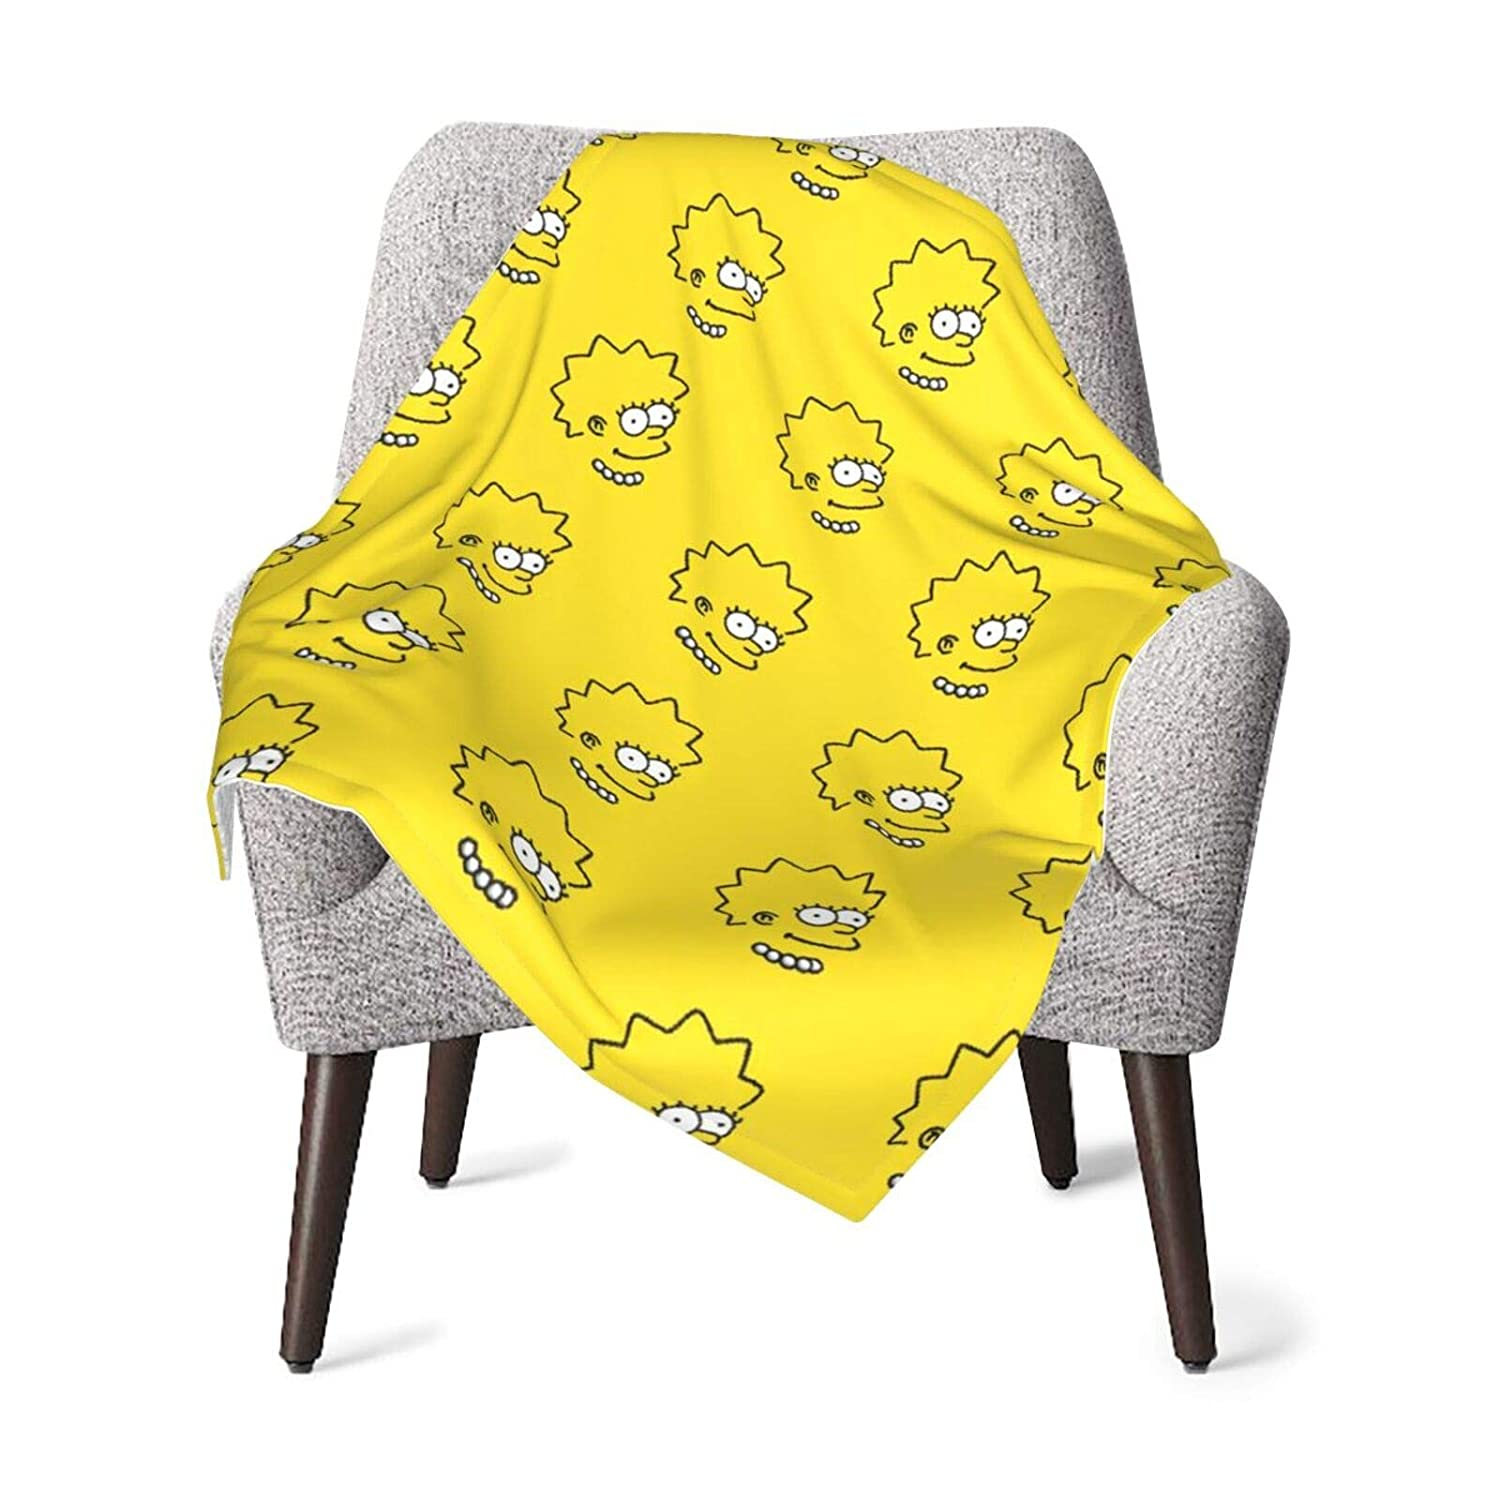 The Simpsons Baby Blanket Super Soft Plush Blankets 30x40